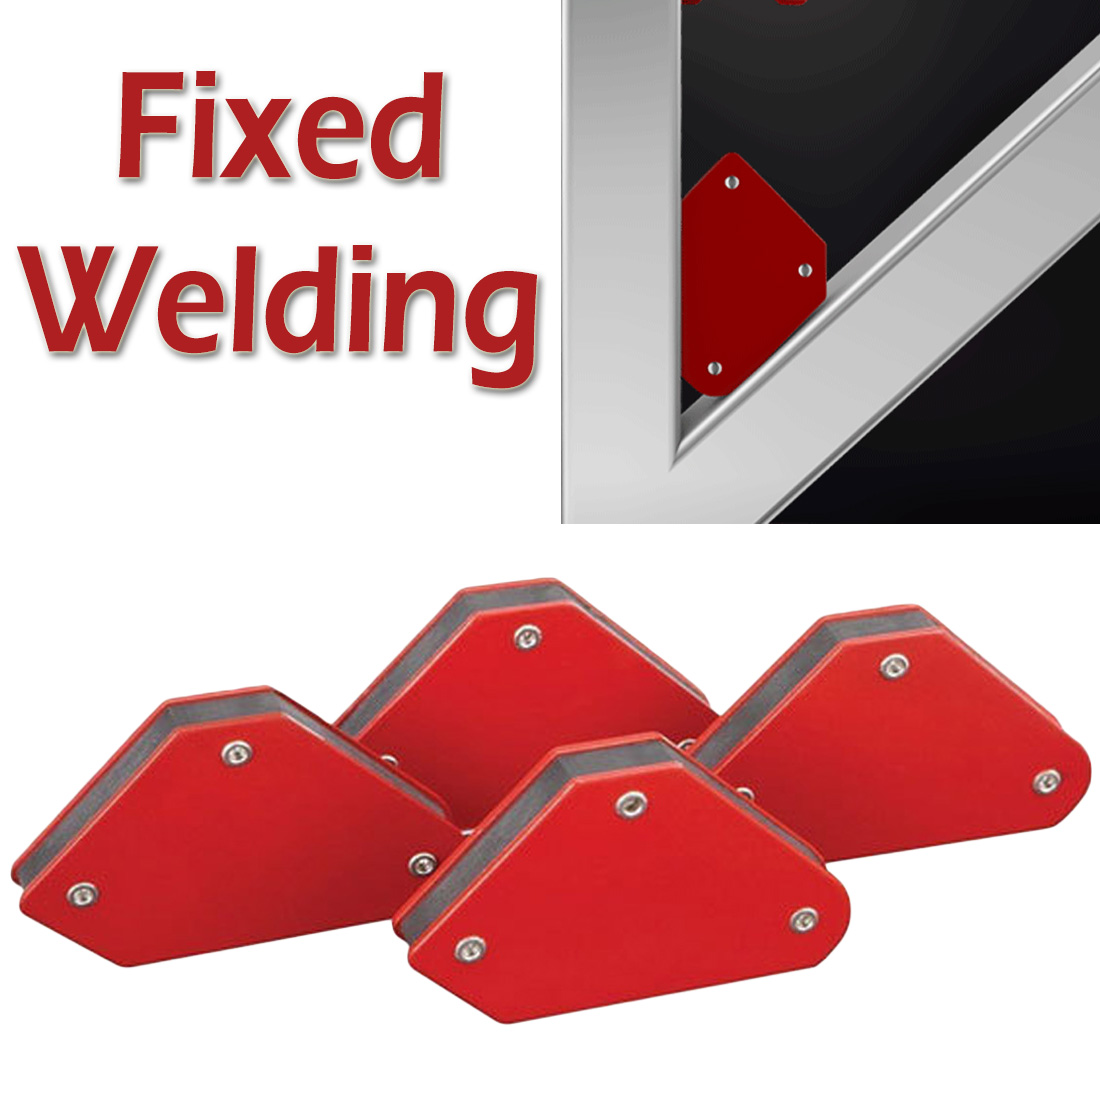 4pcs/set 9LB Welding Locator Strong Magnet Welder Positioner 45 90 135 Power Tool Soldering Fixture Magnetic Welding Holder